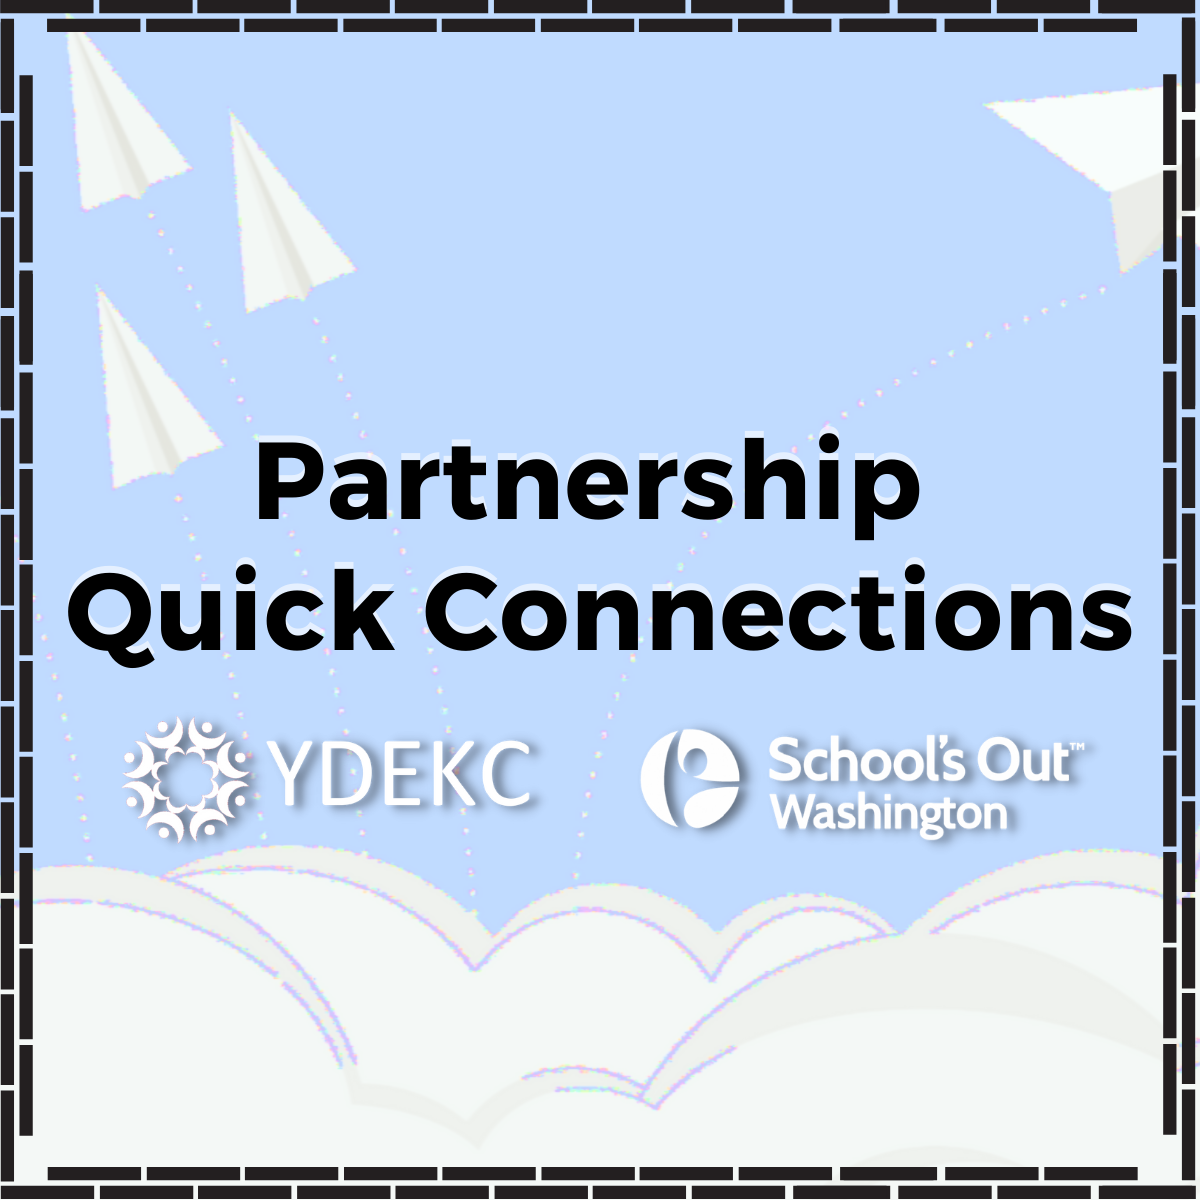 Partnership Quick Connections